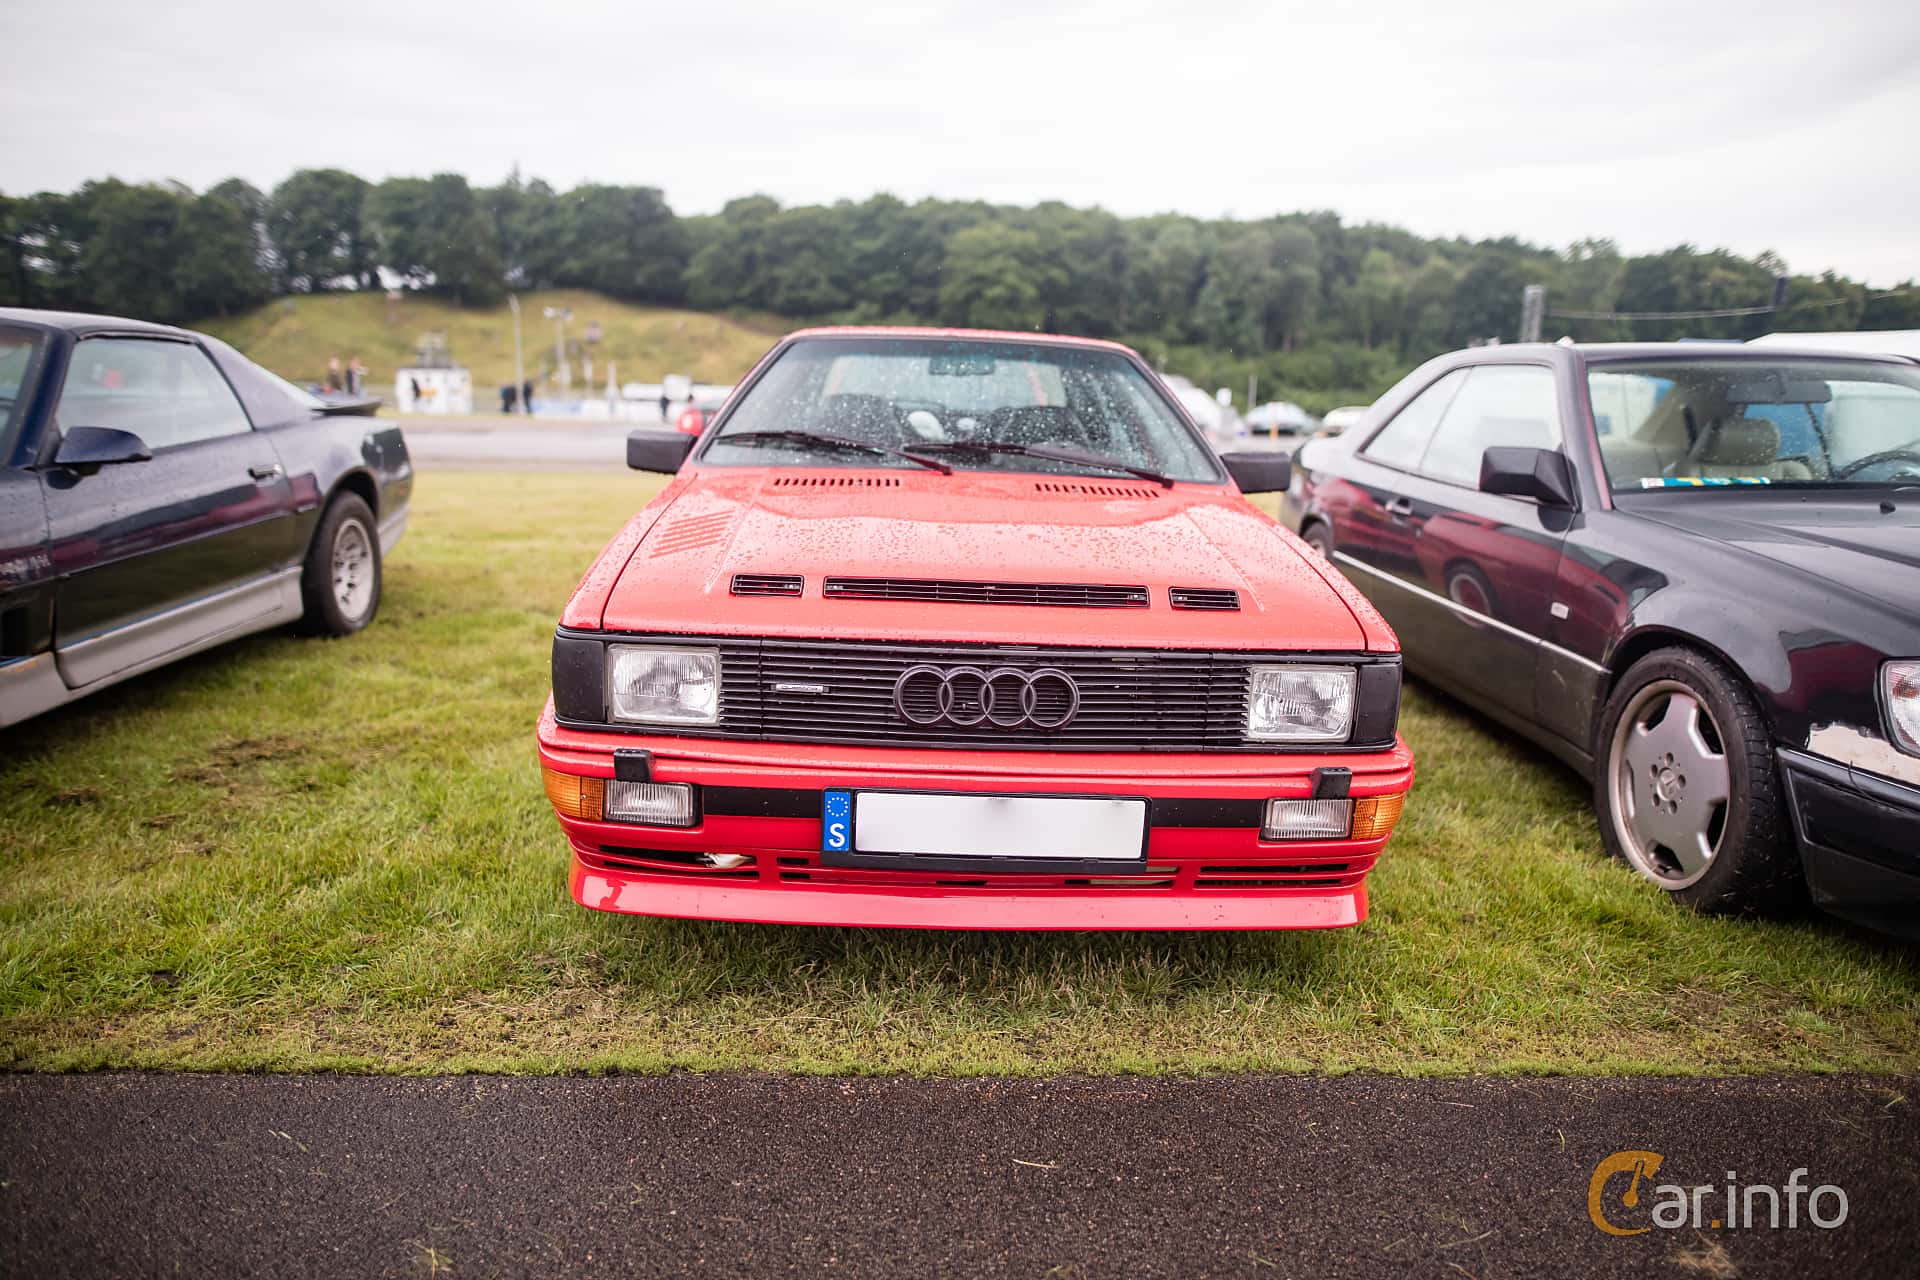 Audi quattro 2.1 quattro Manual, 200hp, 1983 at Svenskt sportvagnsmeeting 2016